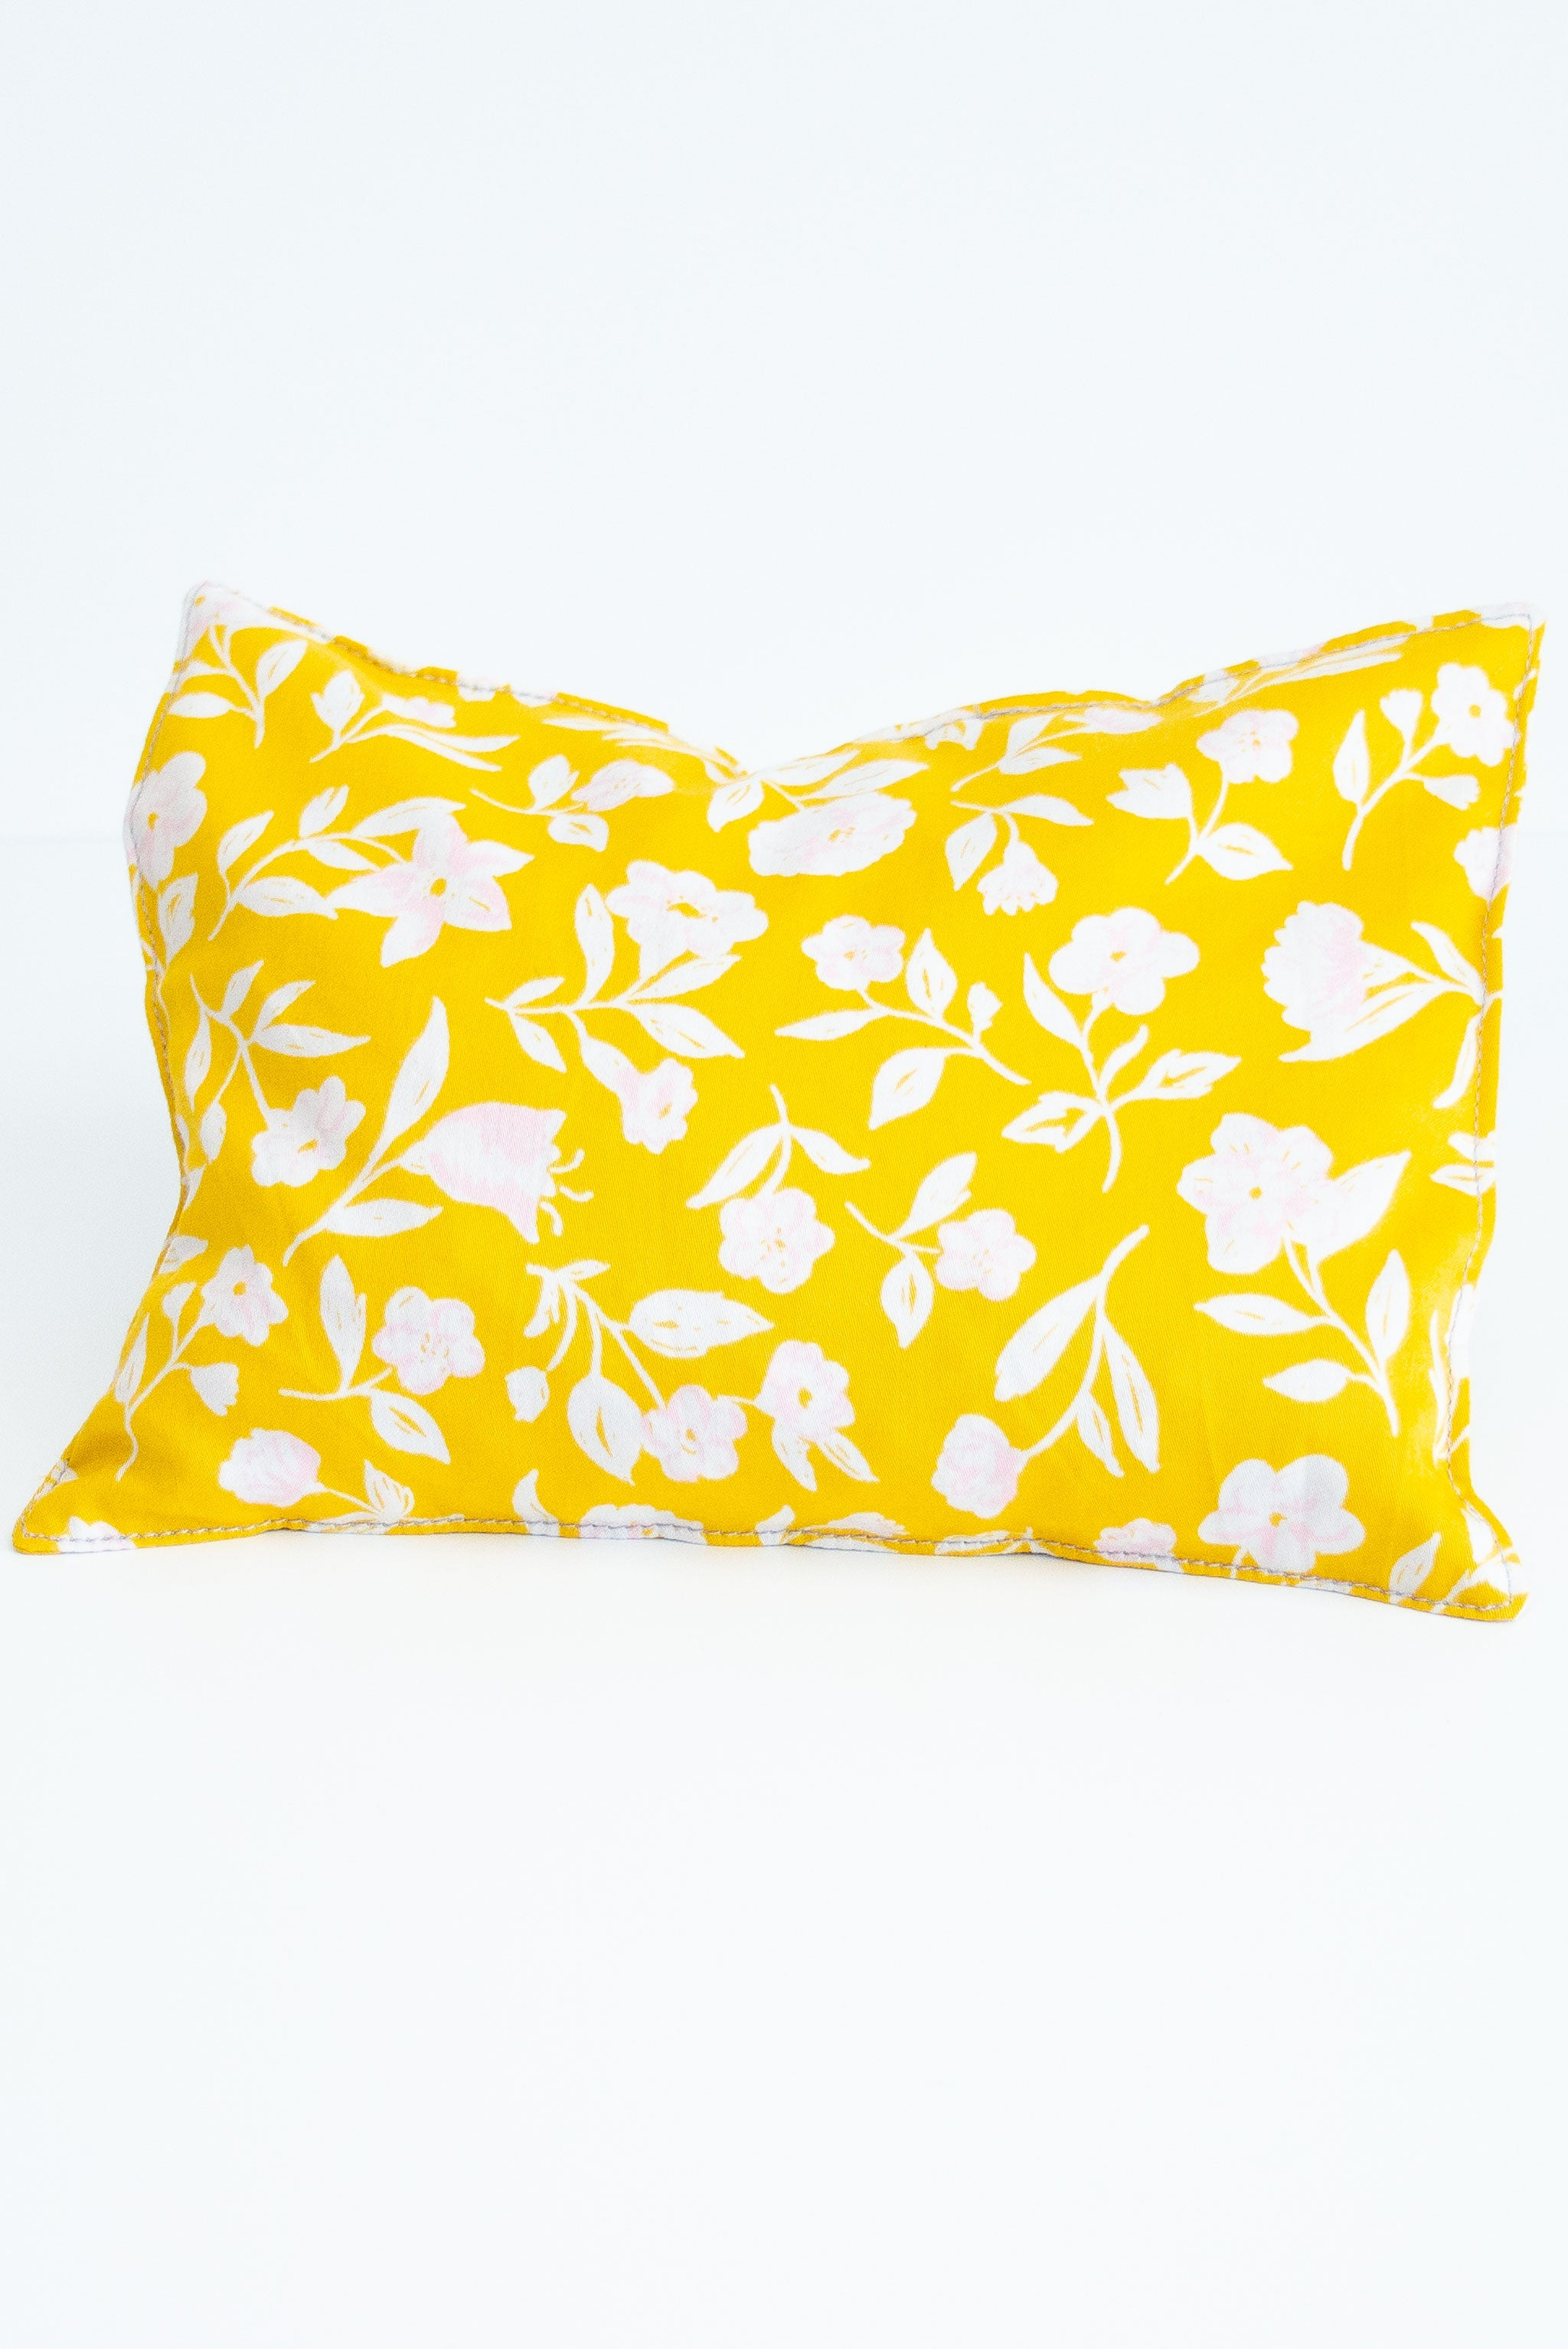 Rectangle cherry pit grain bag with white and print floral on yellow background  sits on white background.